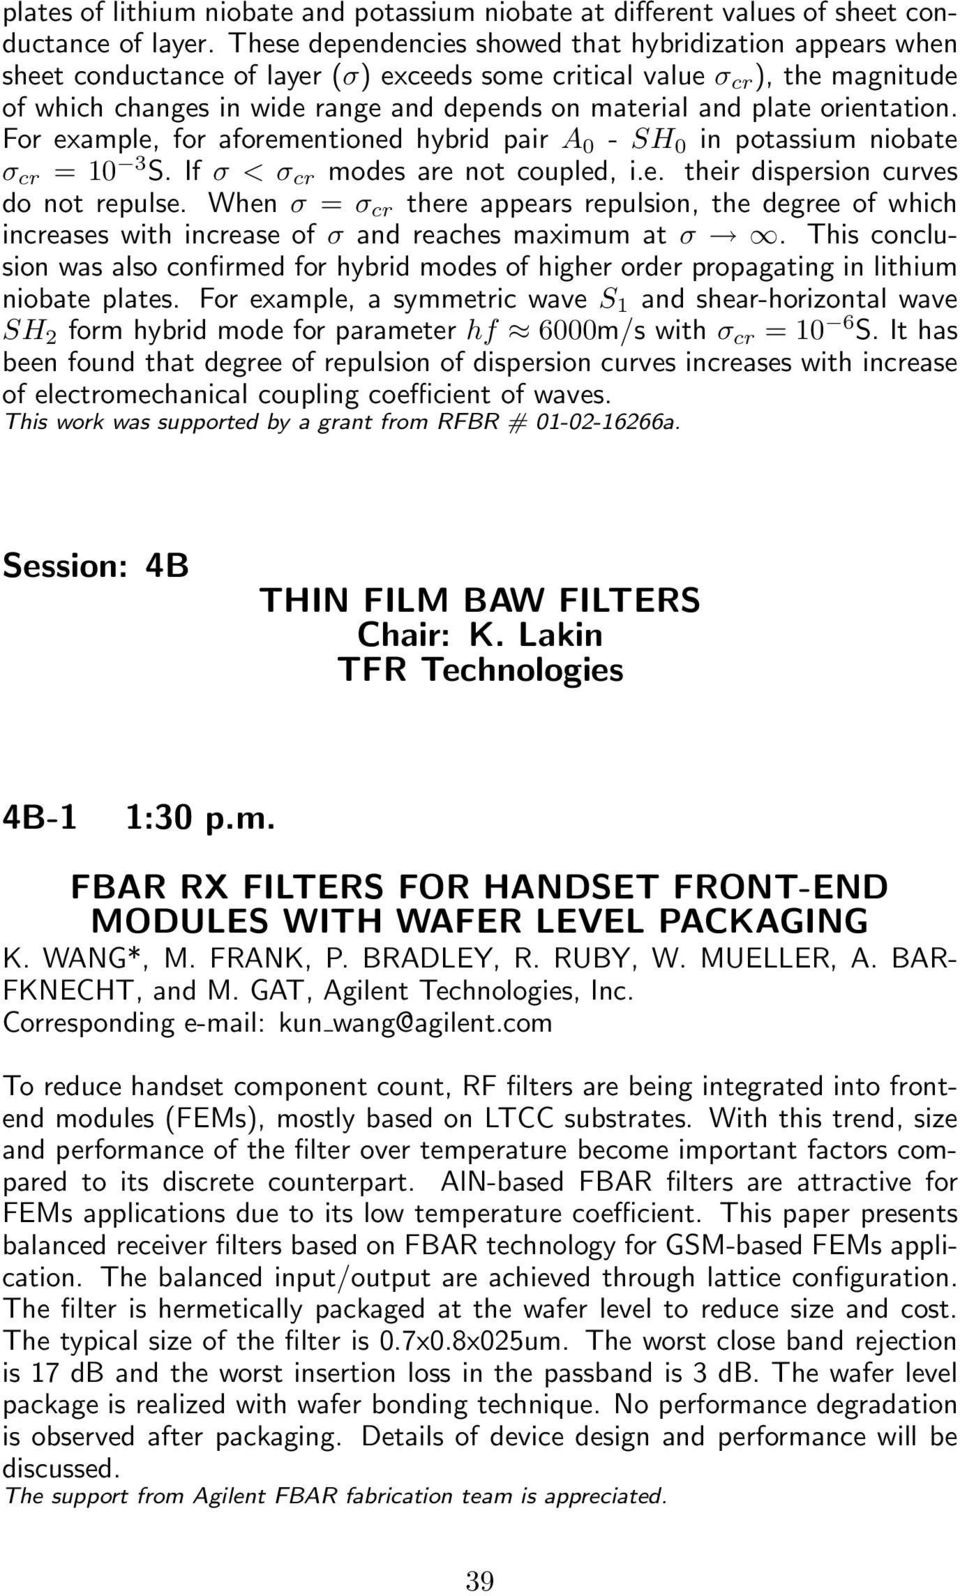 Session: 4B THIN FILM BAW FILTERS Chair: K  Lakin TFR